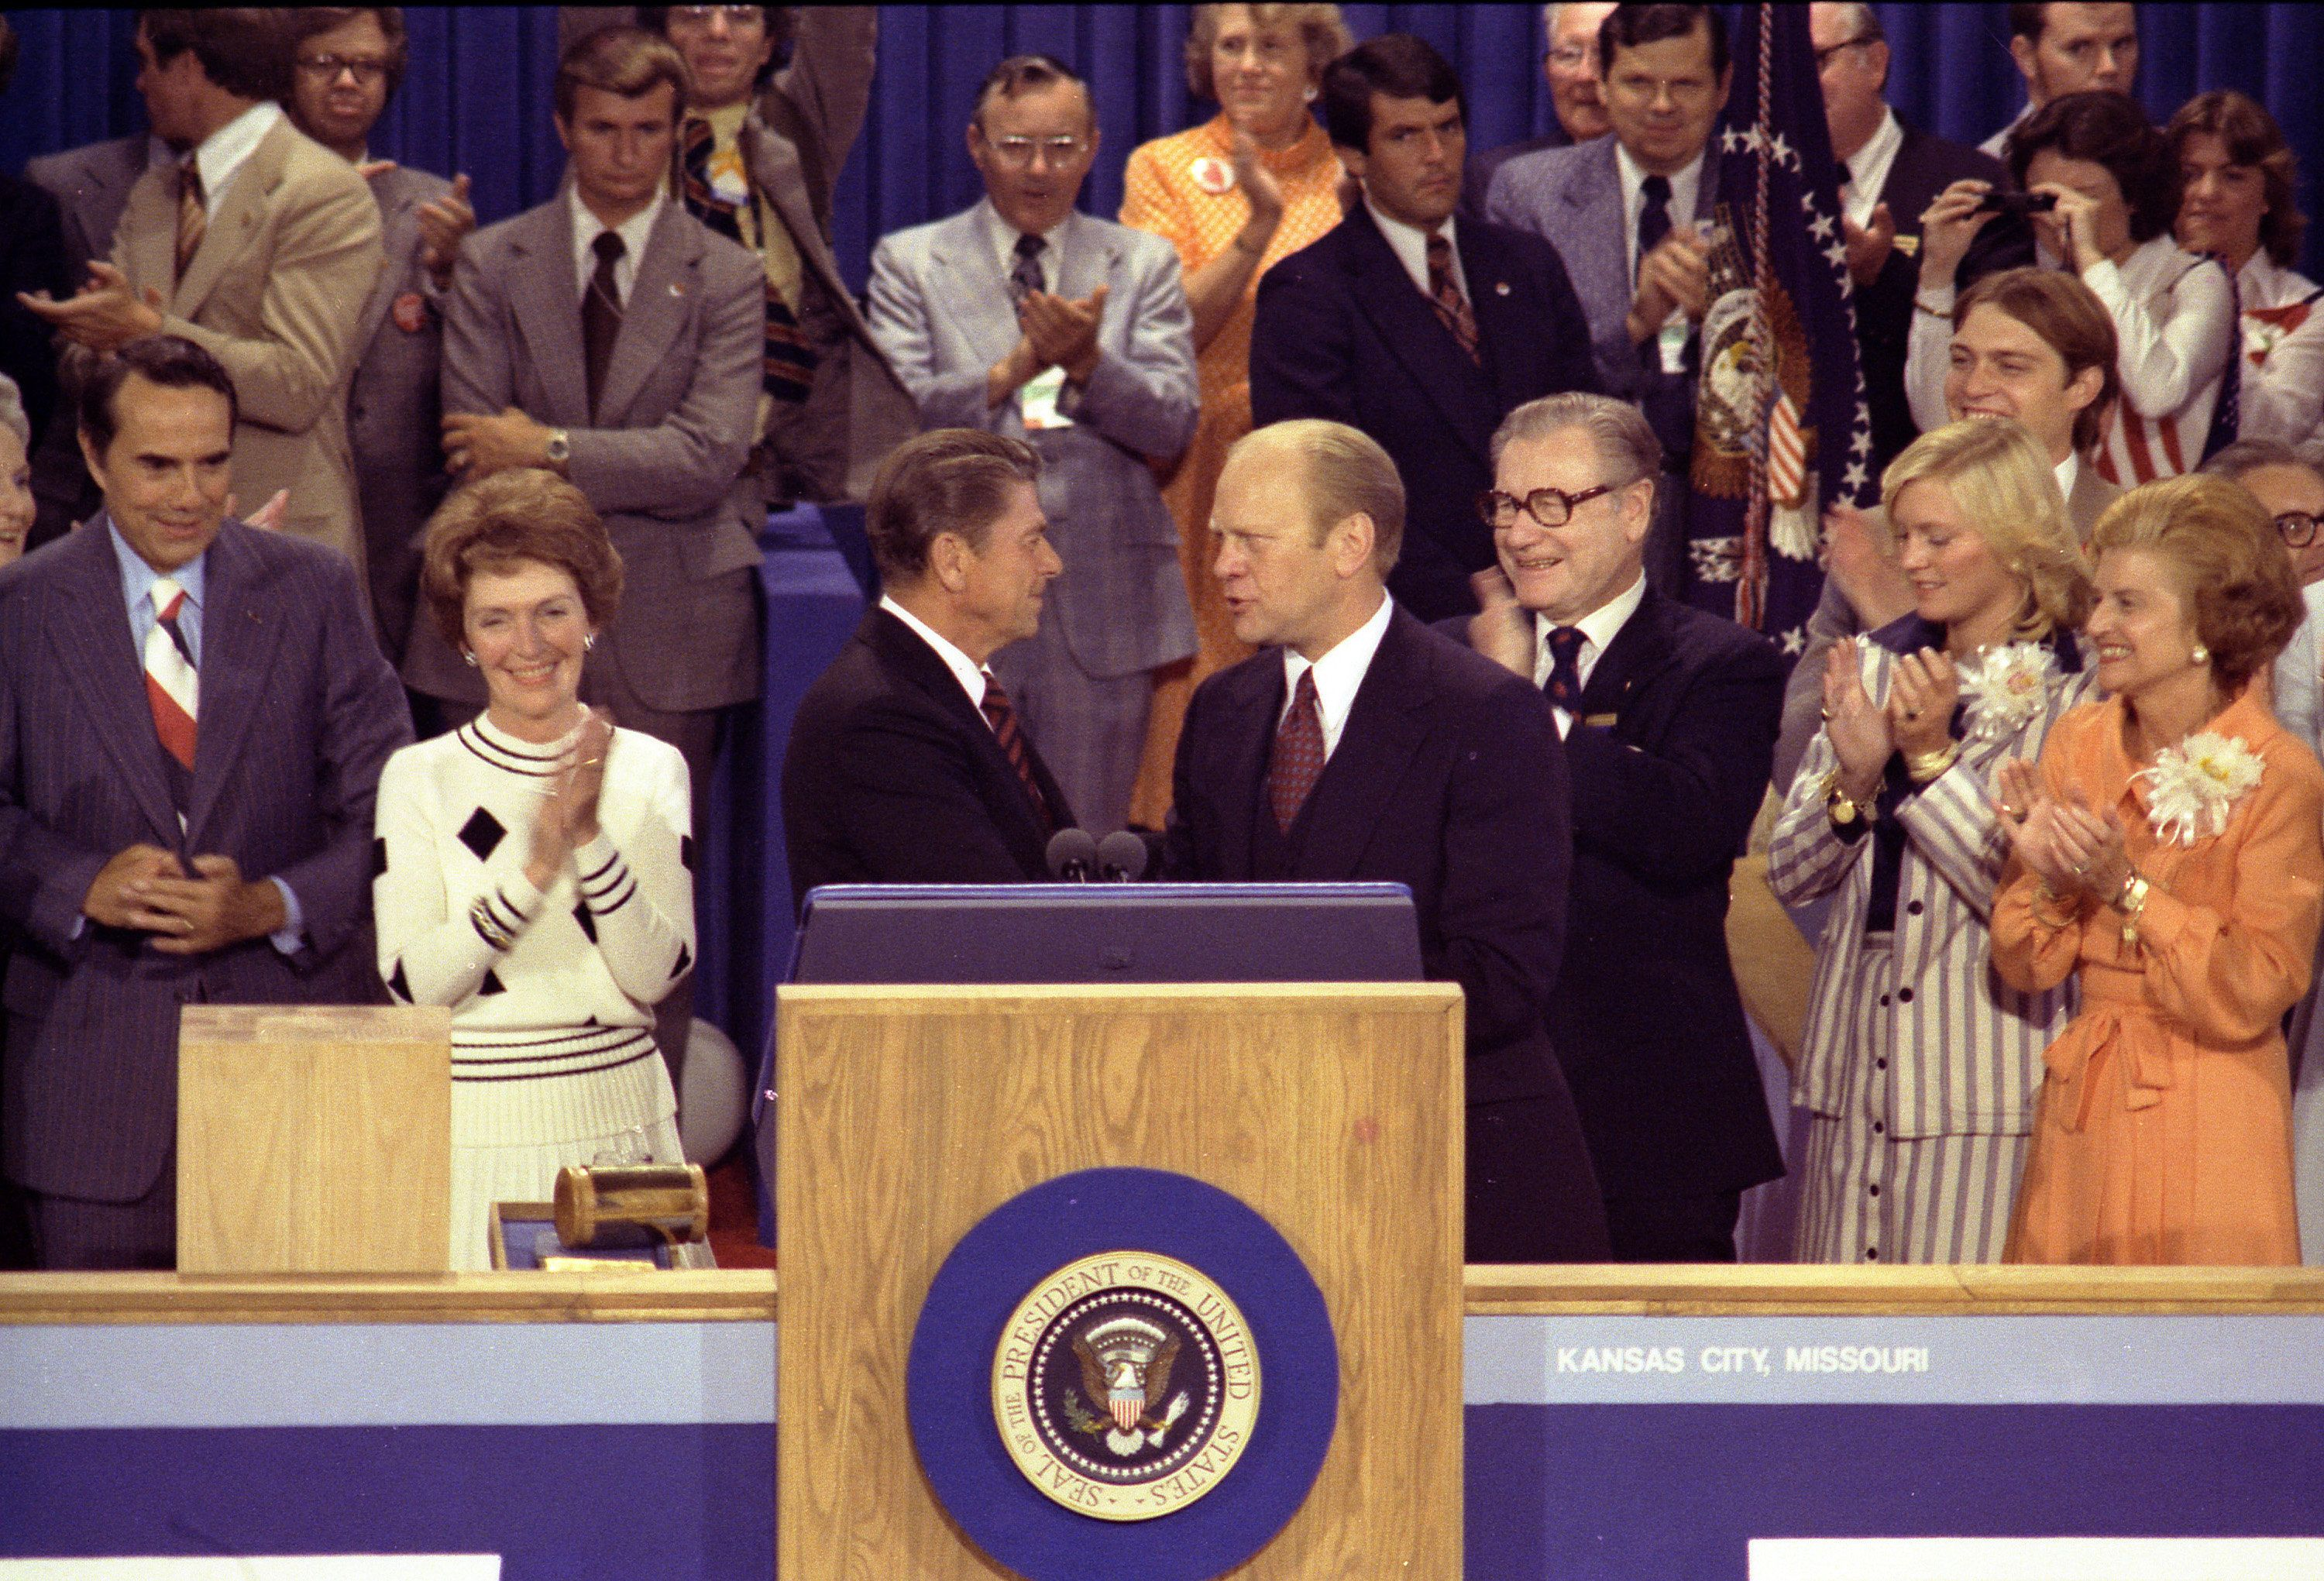 On Aug. 19, 1976, the closing night of the GOP convention in Kansas City, Missouri, President Gerald Ford thanked Ronald Reag